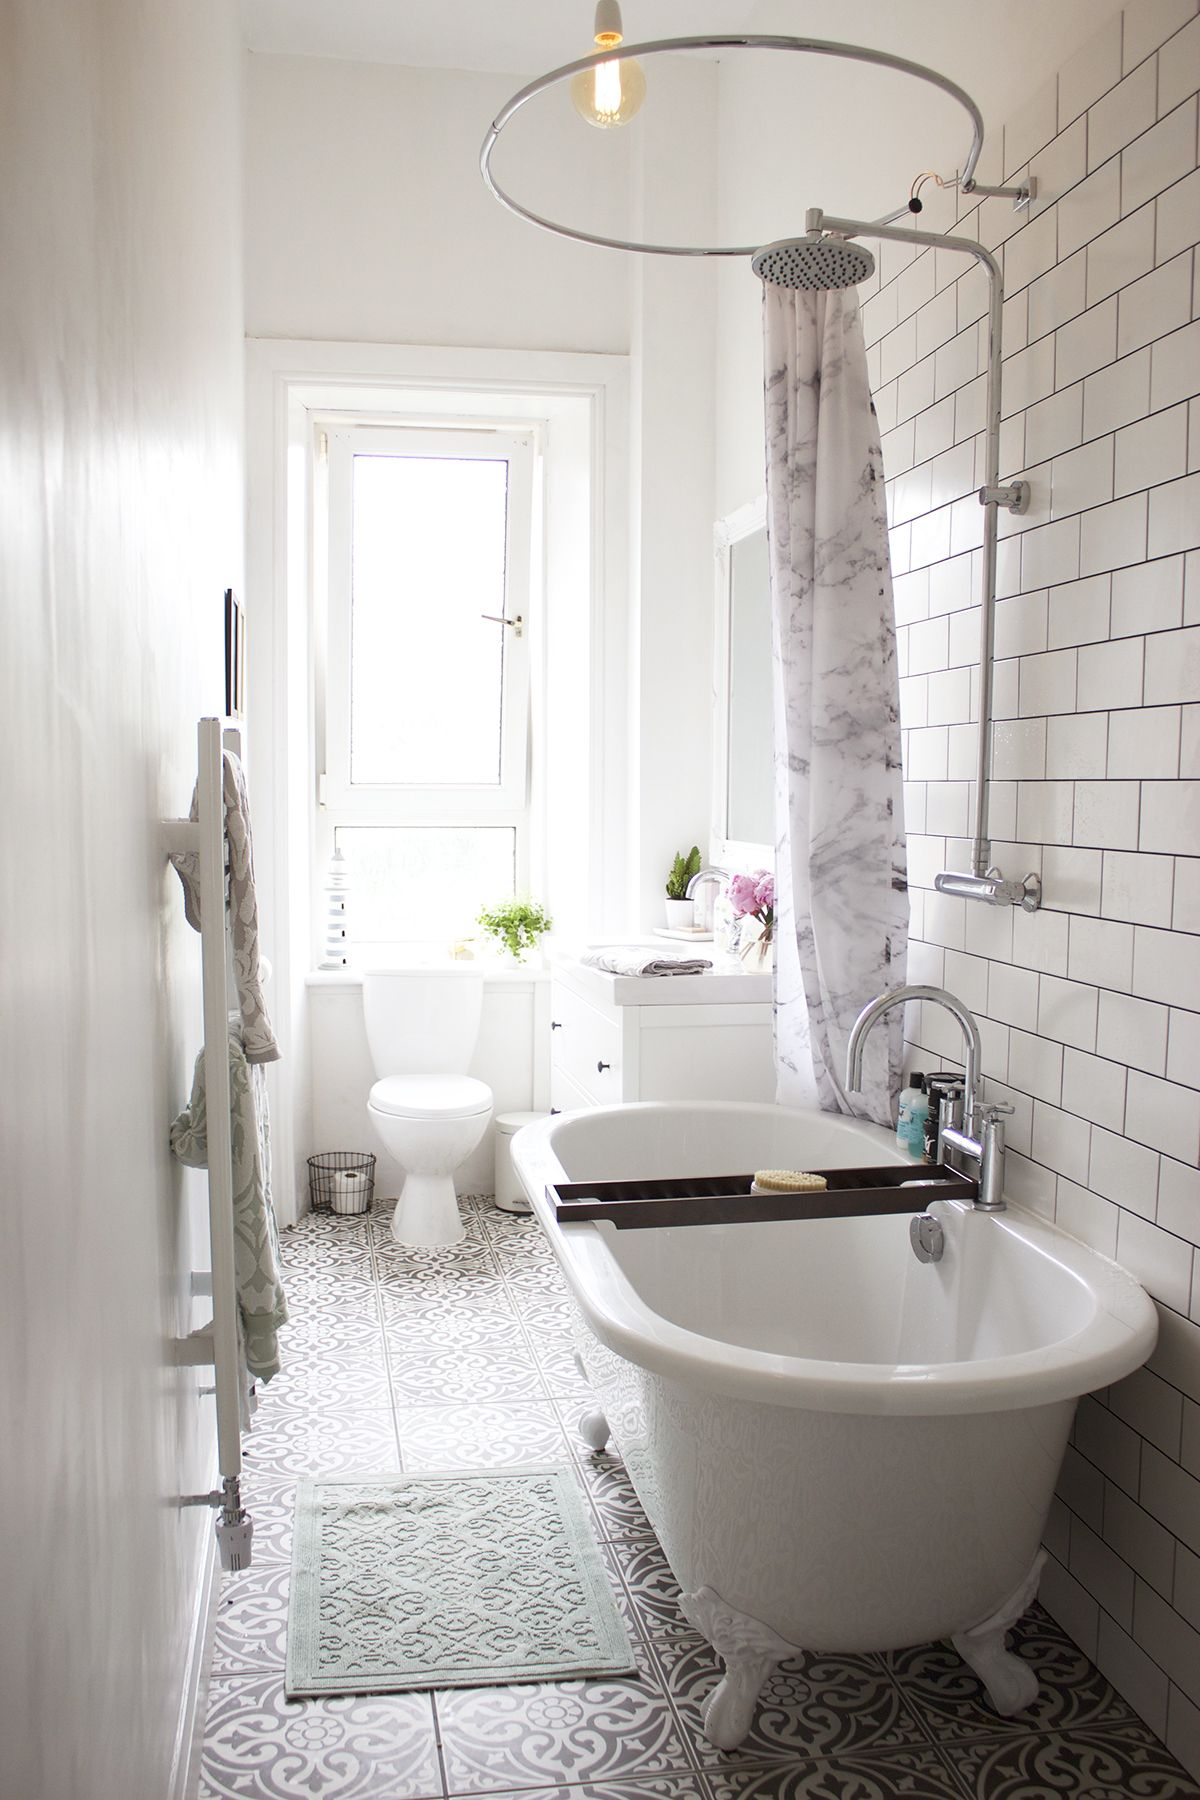 A bathroom makeover before u after kate la vie kate la vie